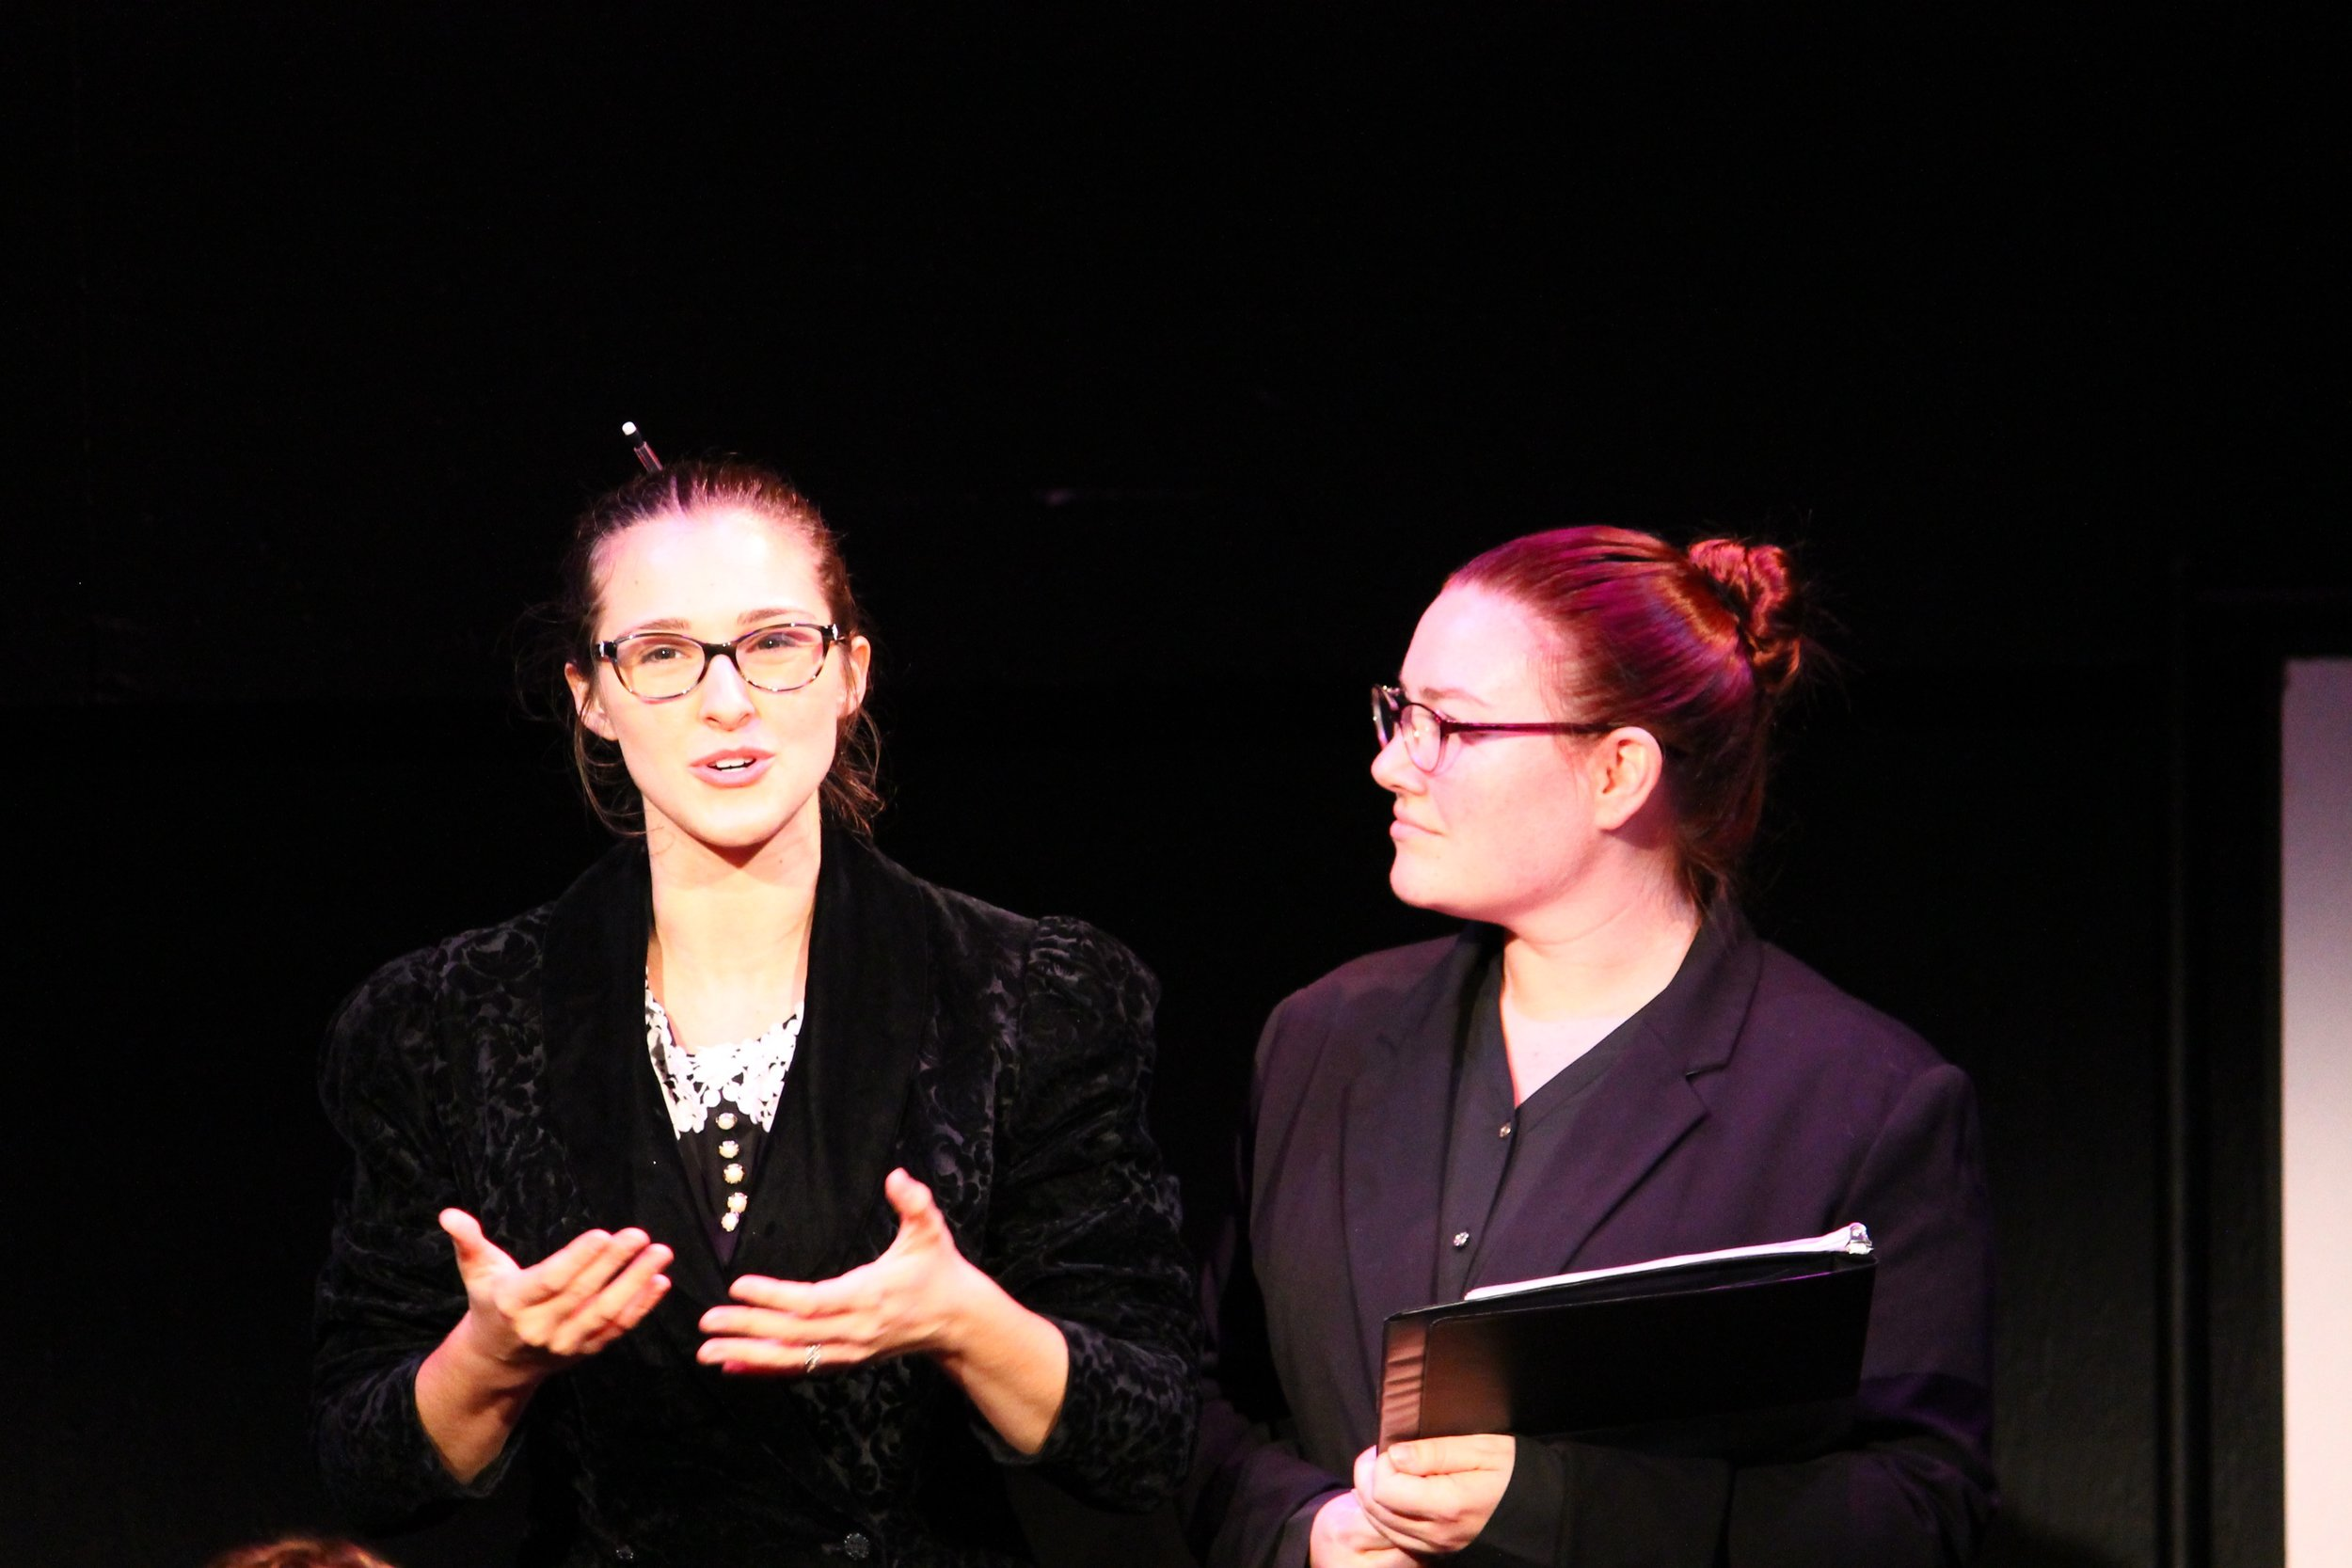 Stephanie Bacastow (left) and Stephanie VanAlstine (right) in LOVING REPEATING.